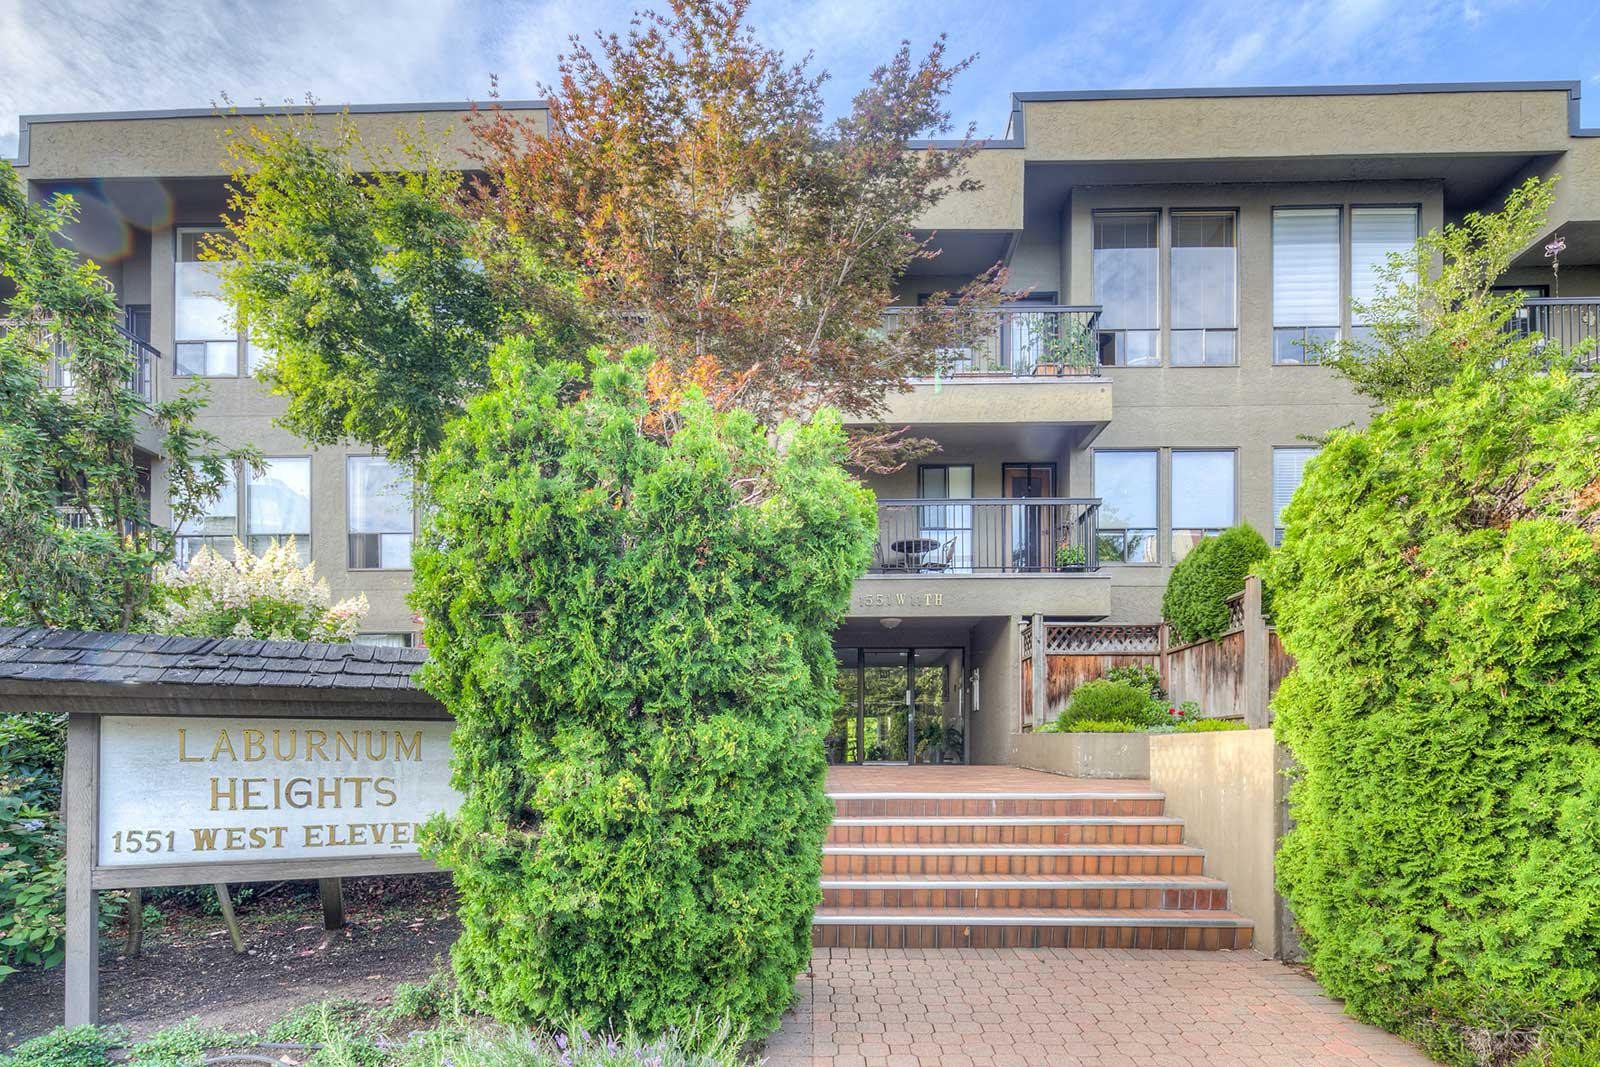 Laburnum Heights at 1551 W 11th Ave, Vancouver 1